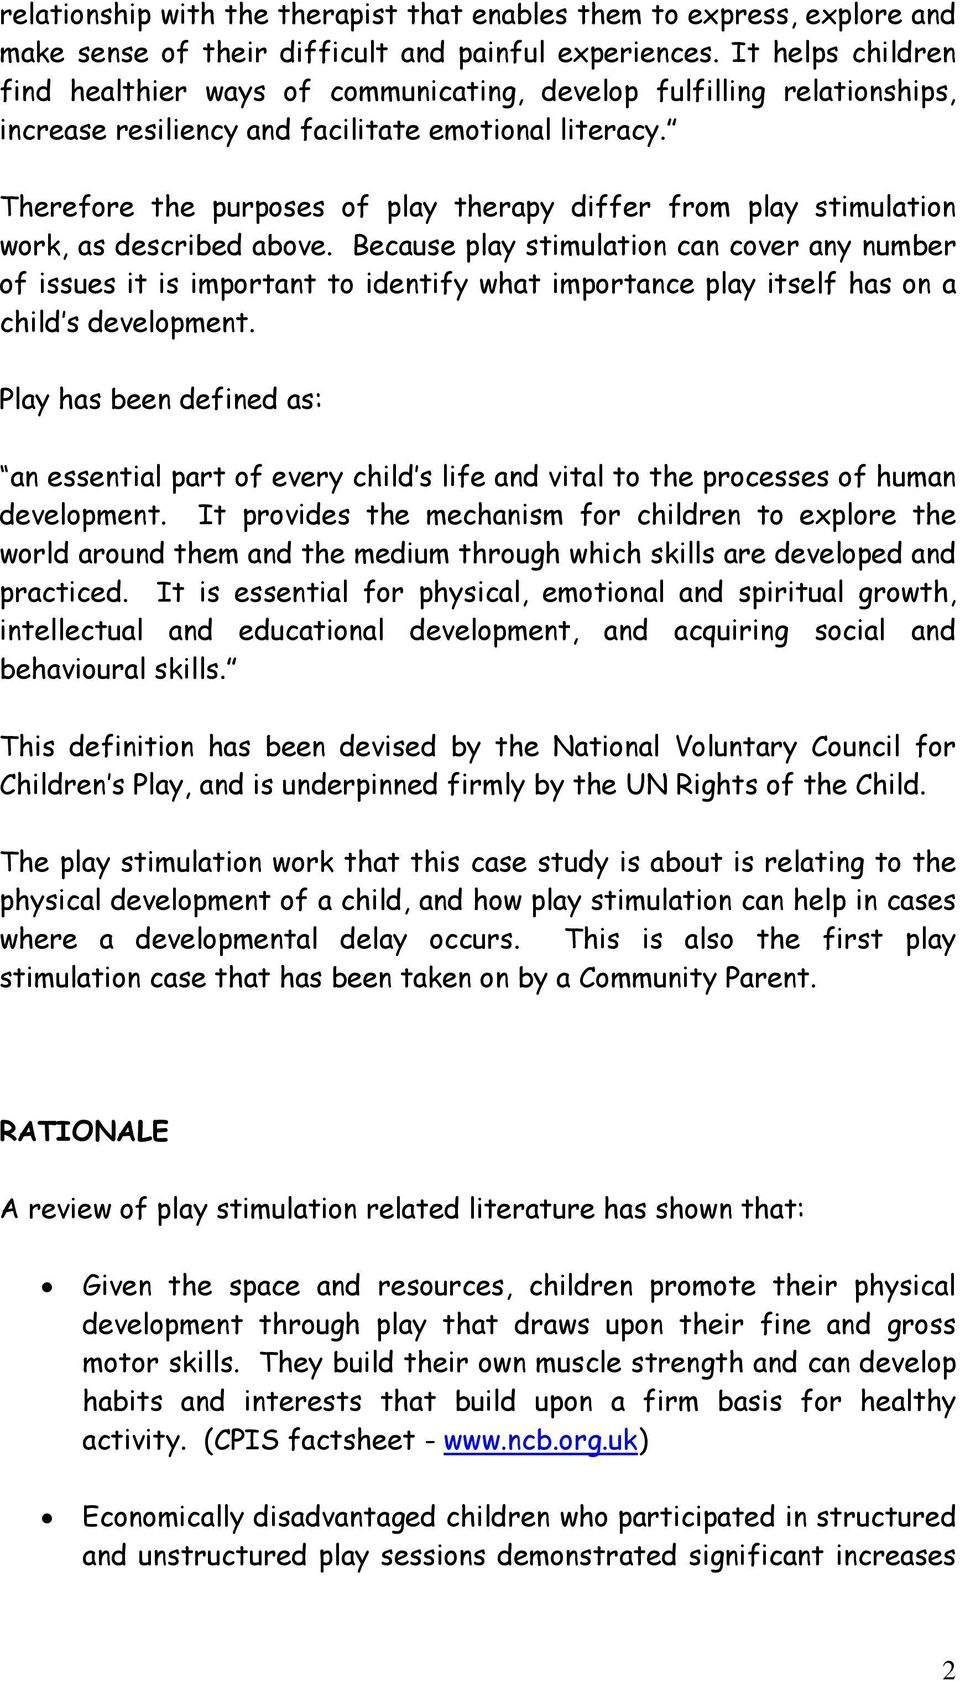 Therefore the purposes of play therapy differ from play stimulation work, as described above.